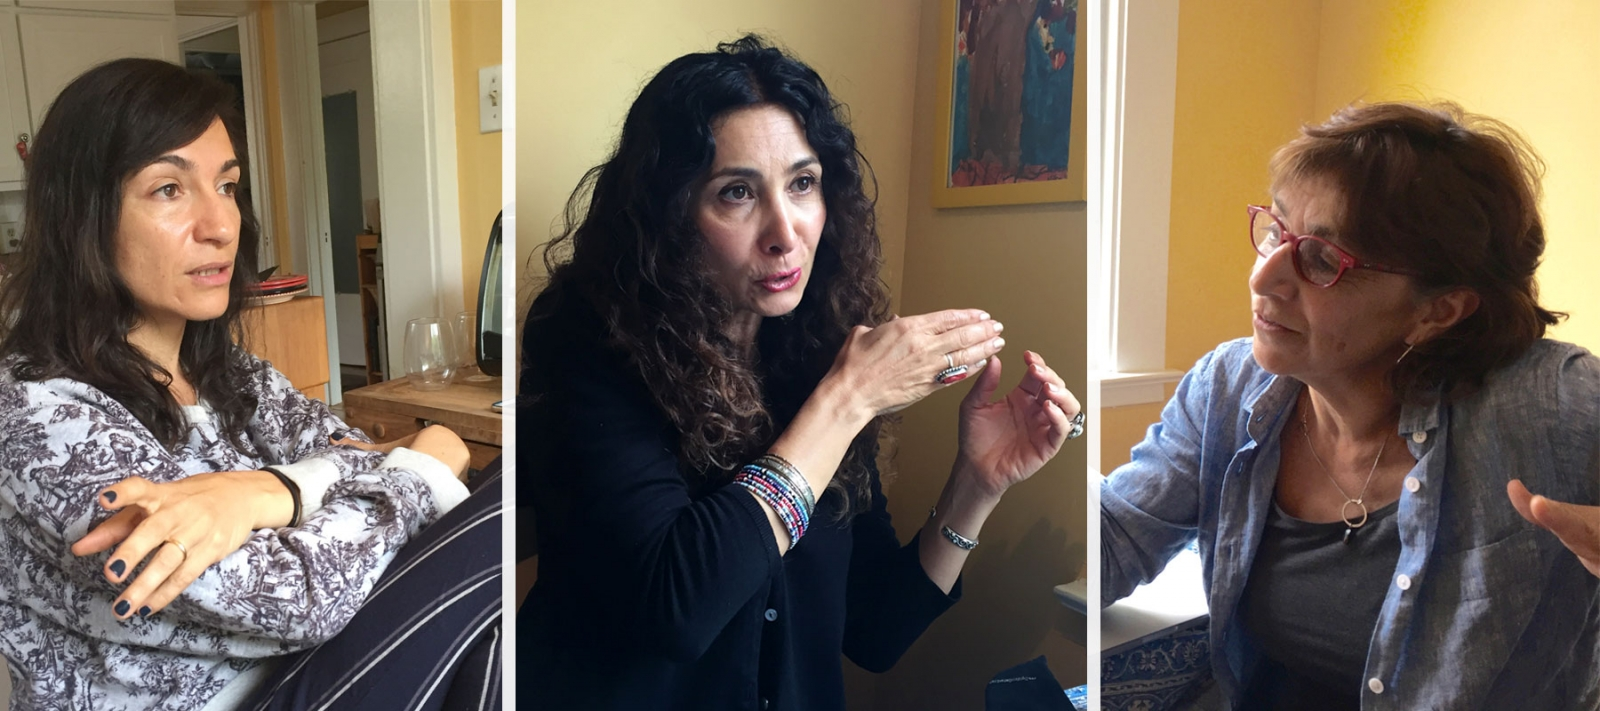 Left to Right: Laleh Khadivi, Sholeh Wolpé, and Persis Karim joined around Karim's kitchen table to discuss the literature of Iranian Americans.